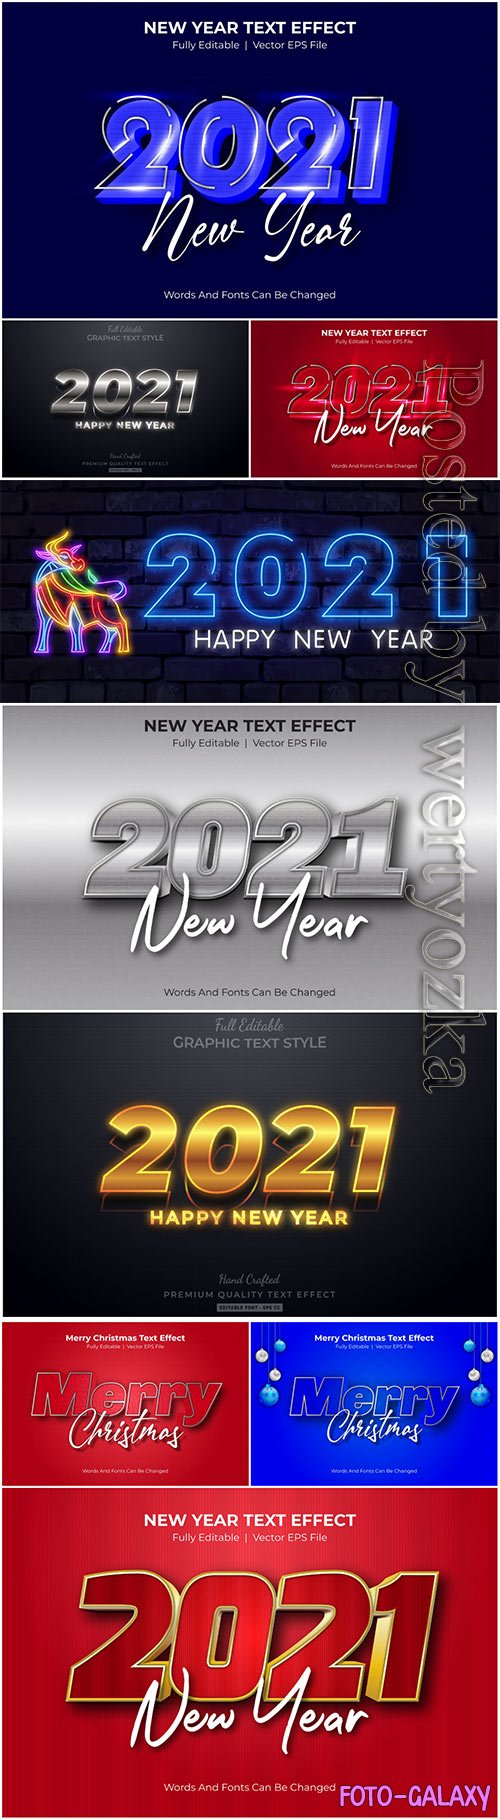 New year editable text style effect